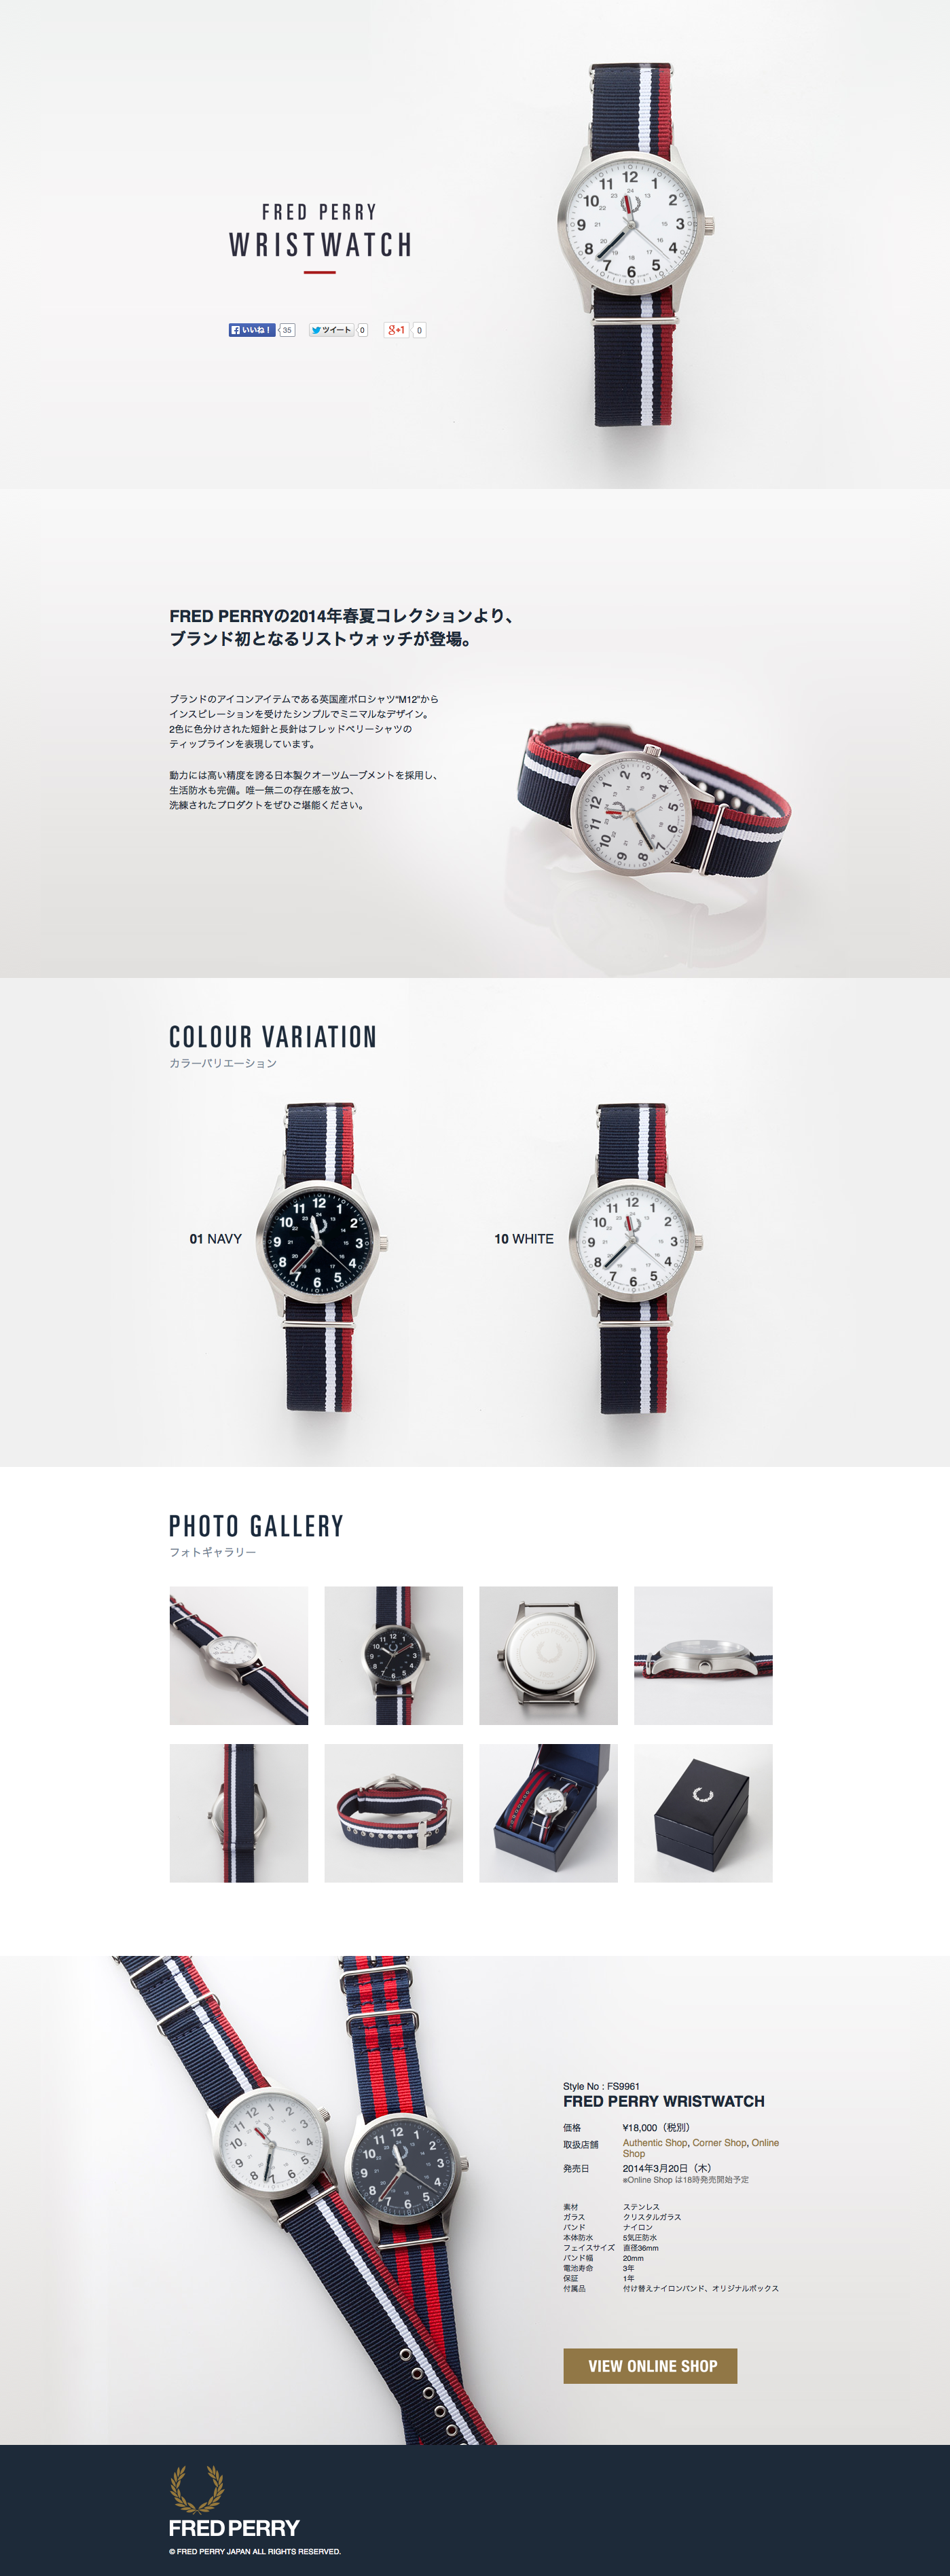 FRED PERRY WRISTWATCH FRED PERRY JAPAN フレッドペリー日本公式サイト